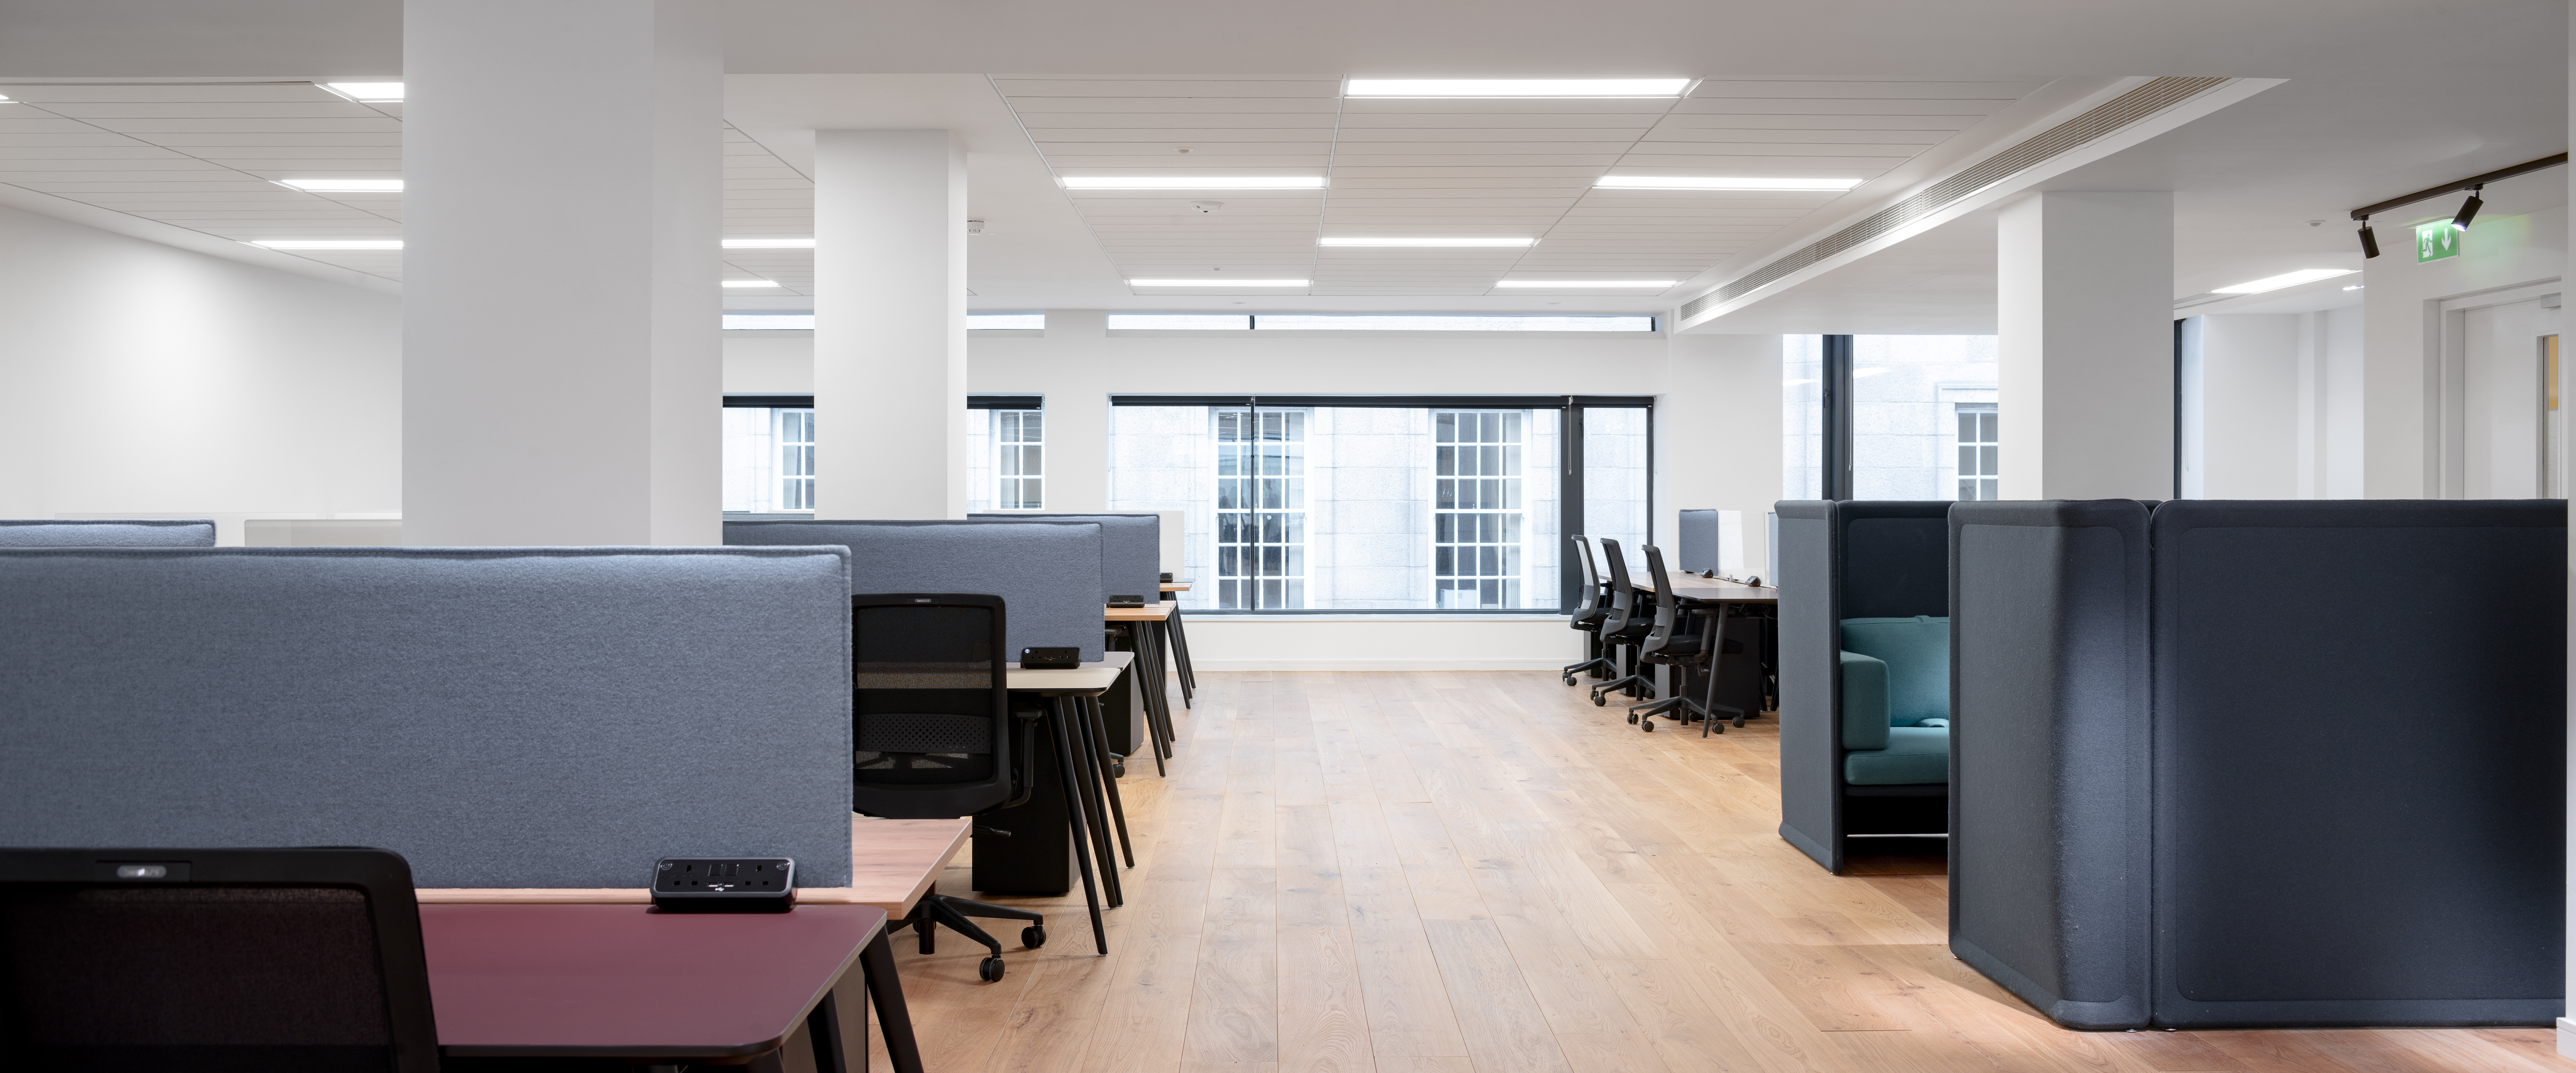 professional coworking office space in London and Dublin ©donalmurphyphoto